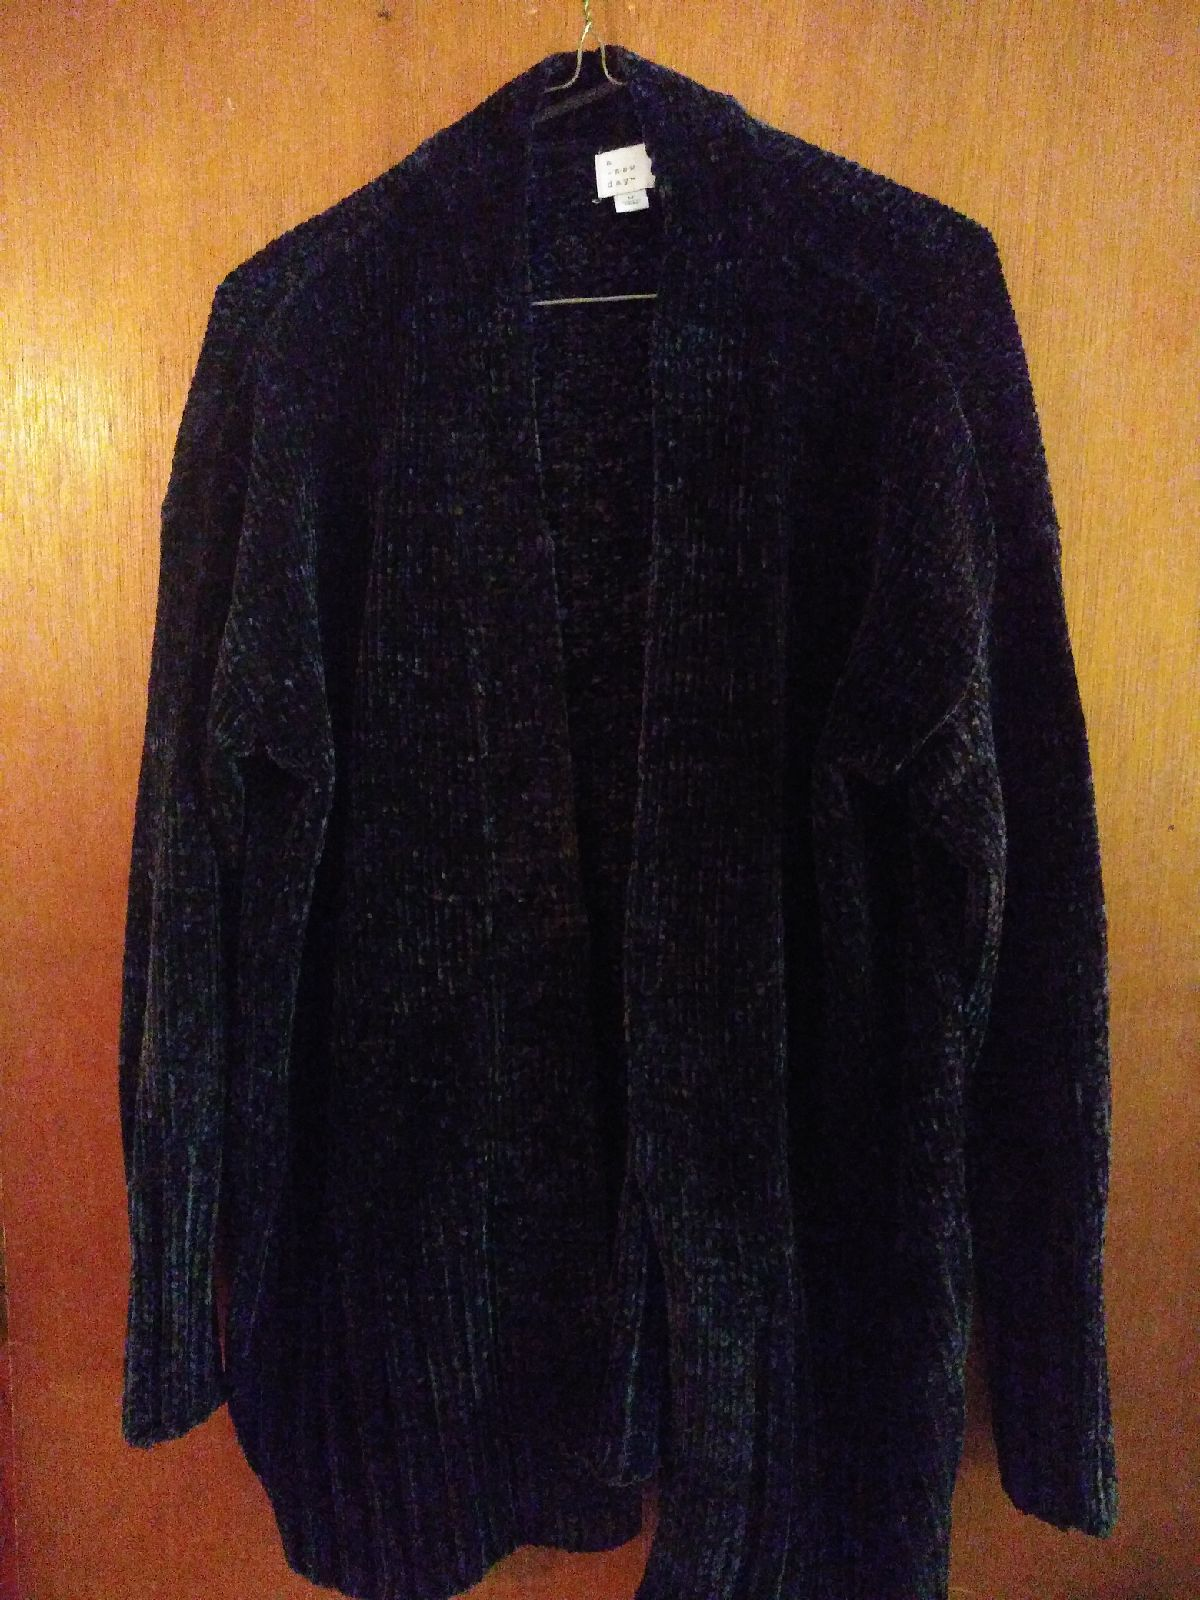 Women's Black Sweater Top Size Medium